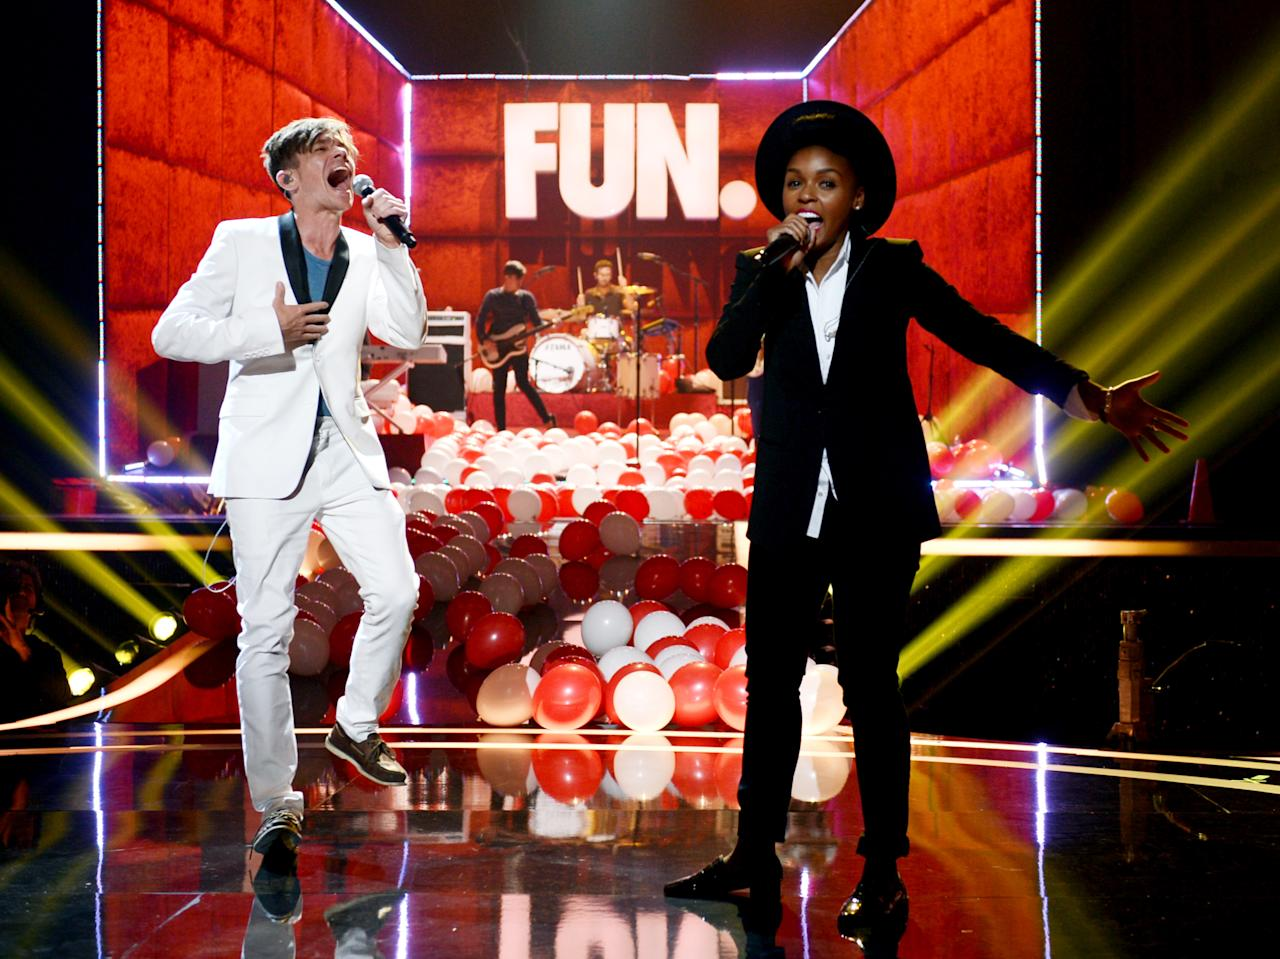 """We Are Young"" - Fun. Featuring Janelle Monáe"